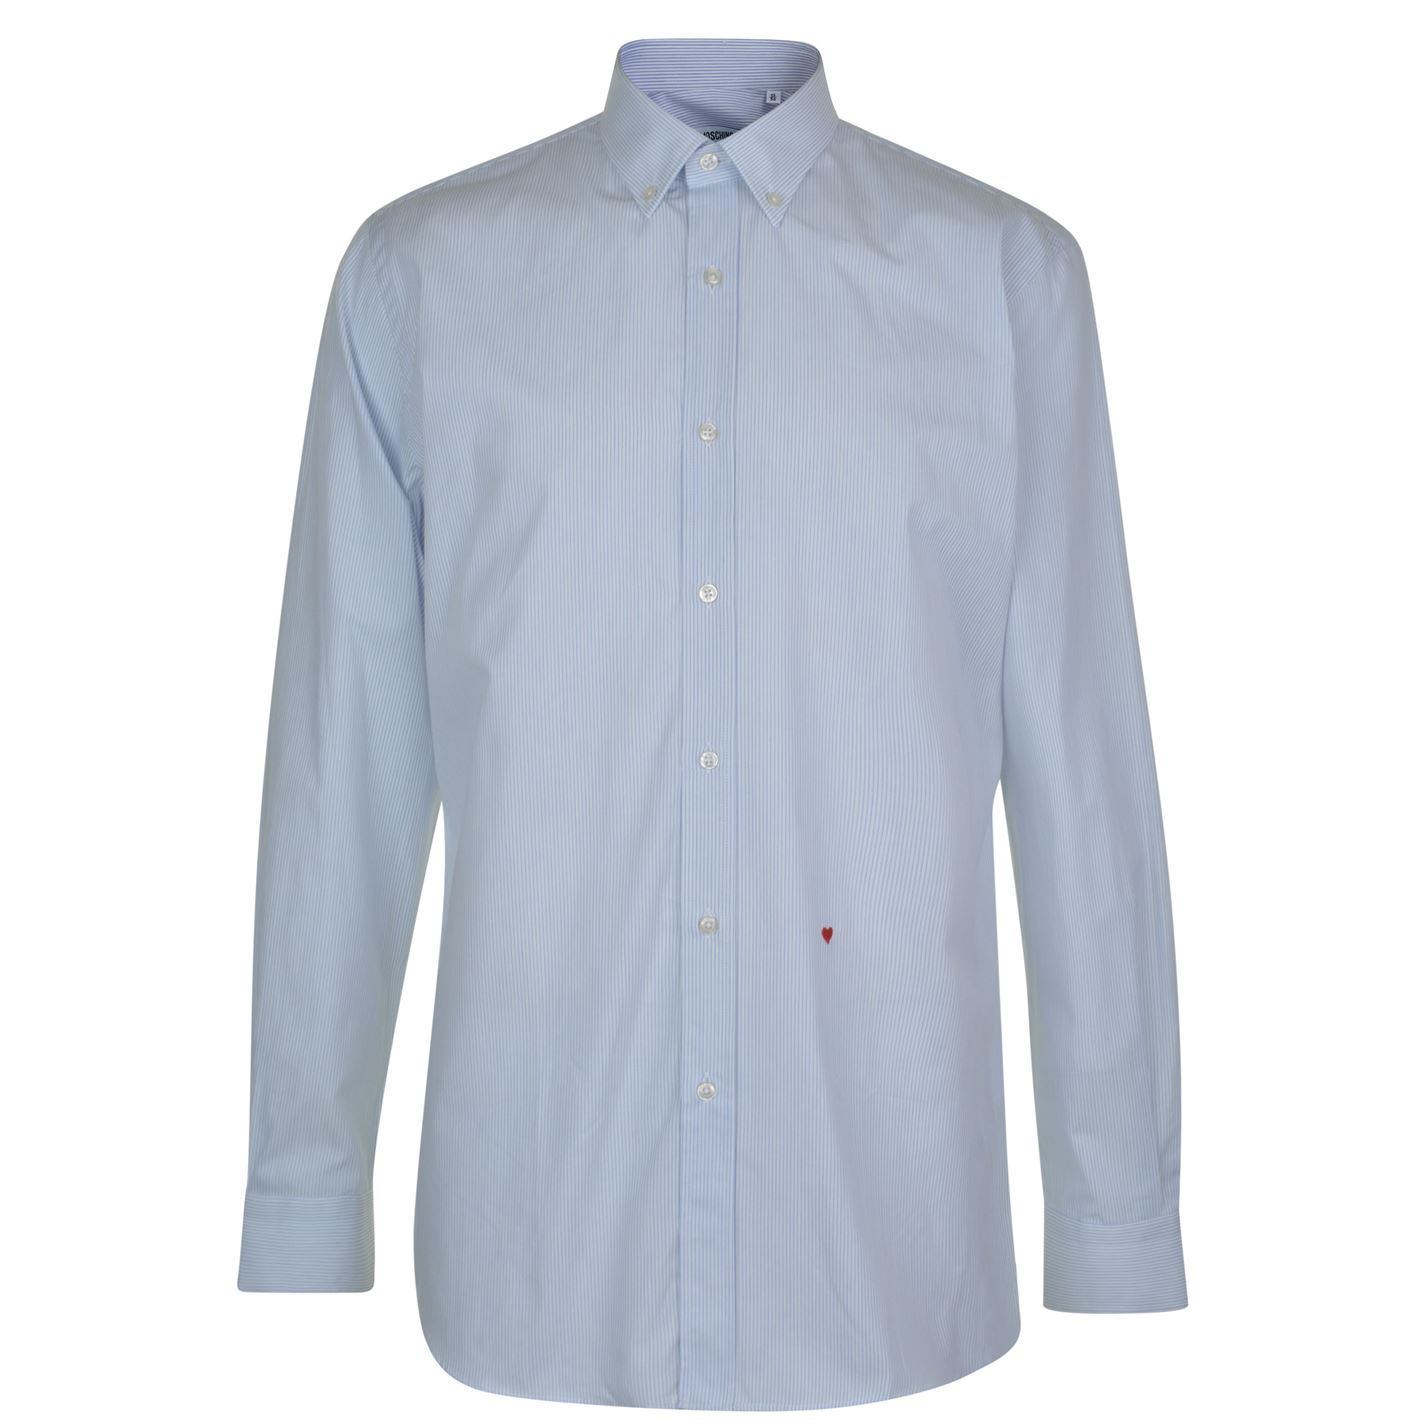 Moschino mens shirt formal button up long sleeve cotton for Guys button up shirts